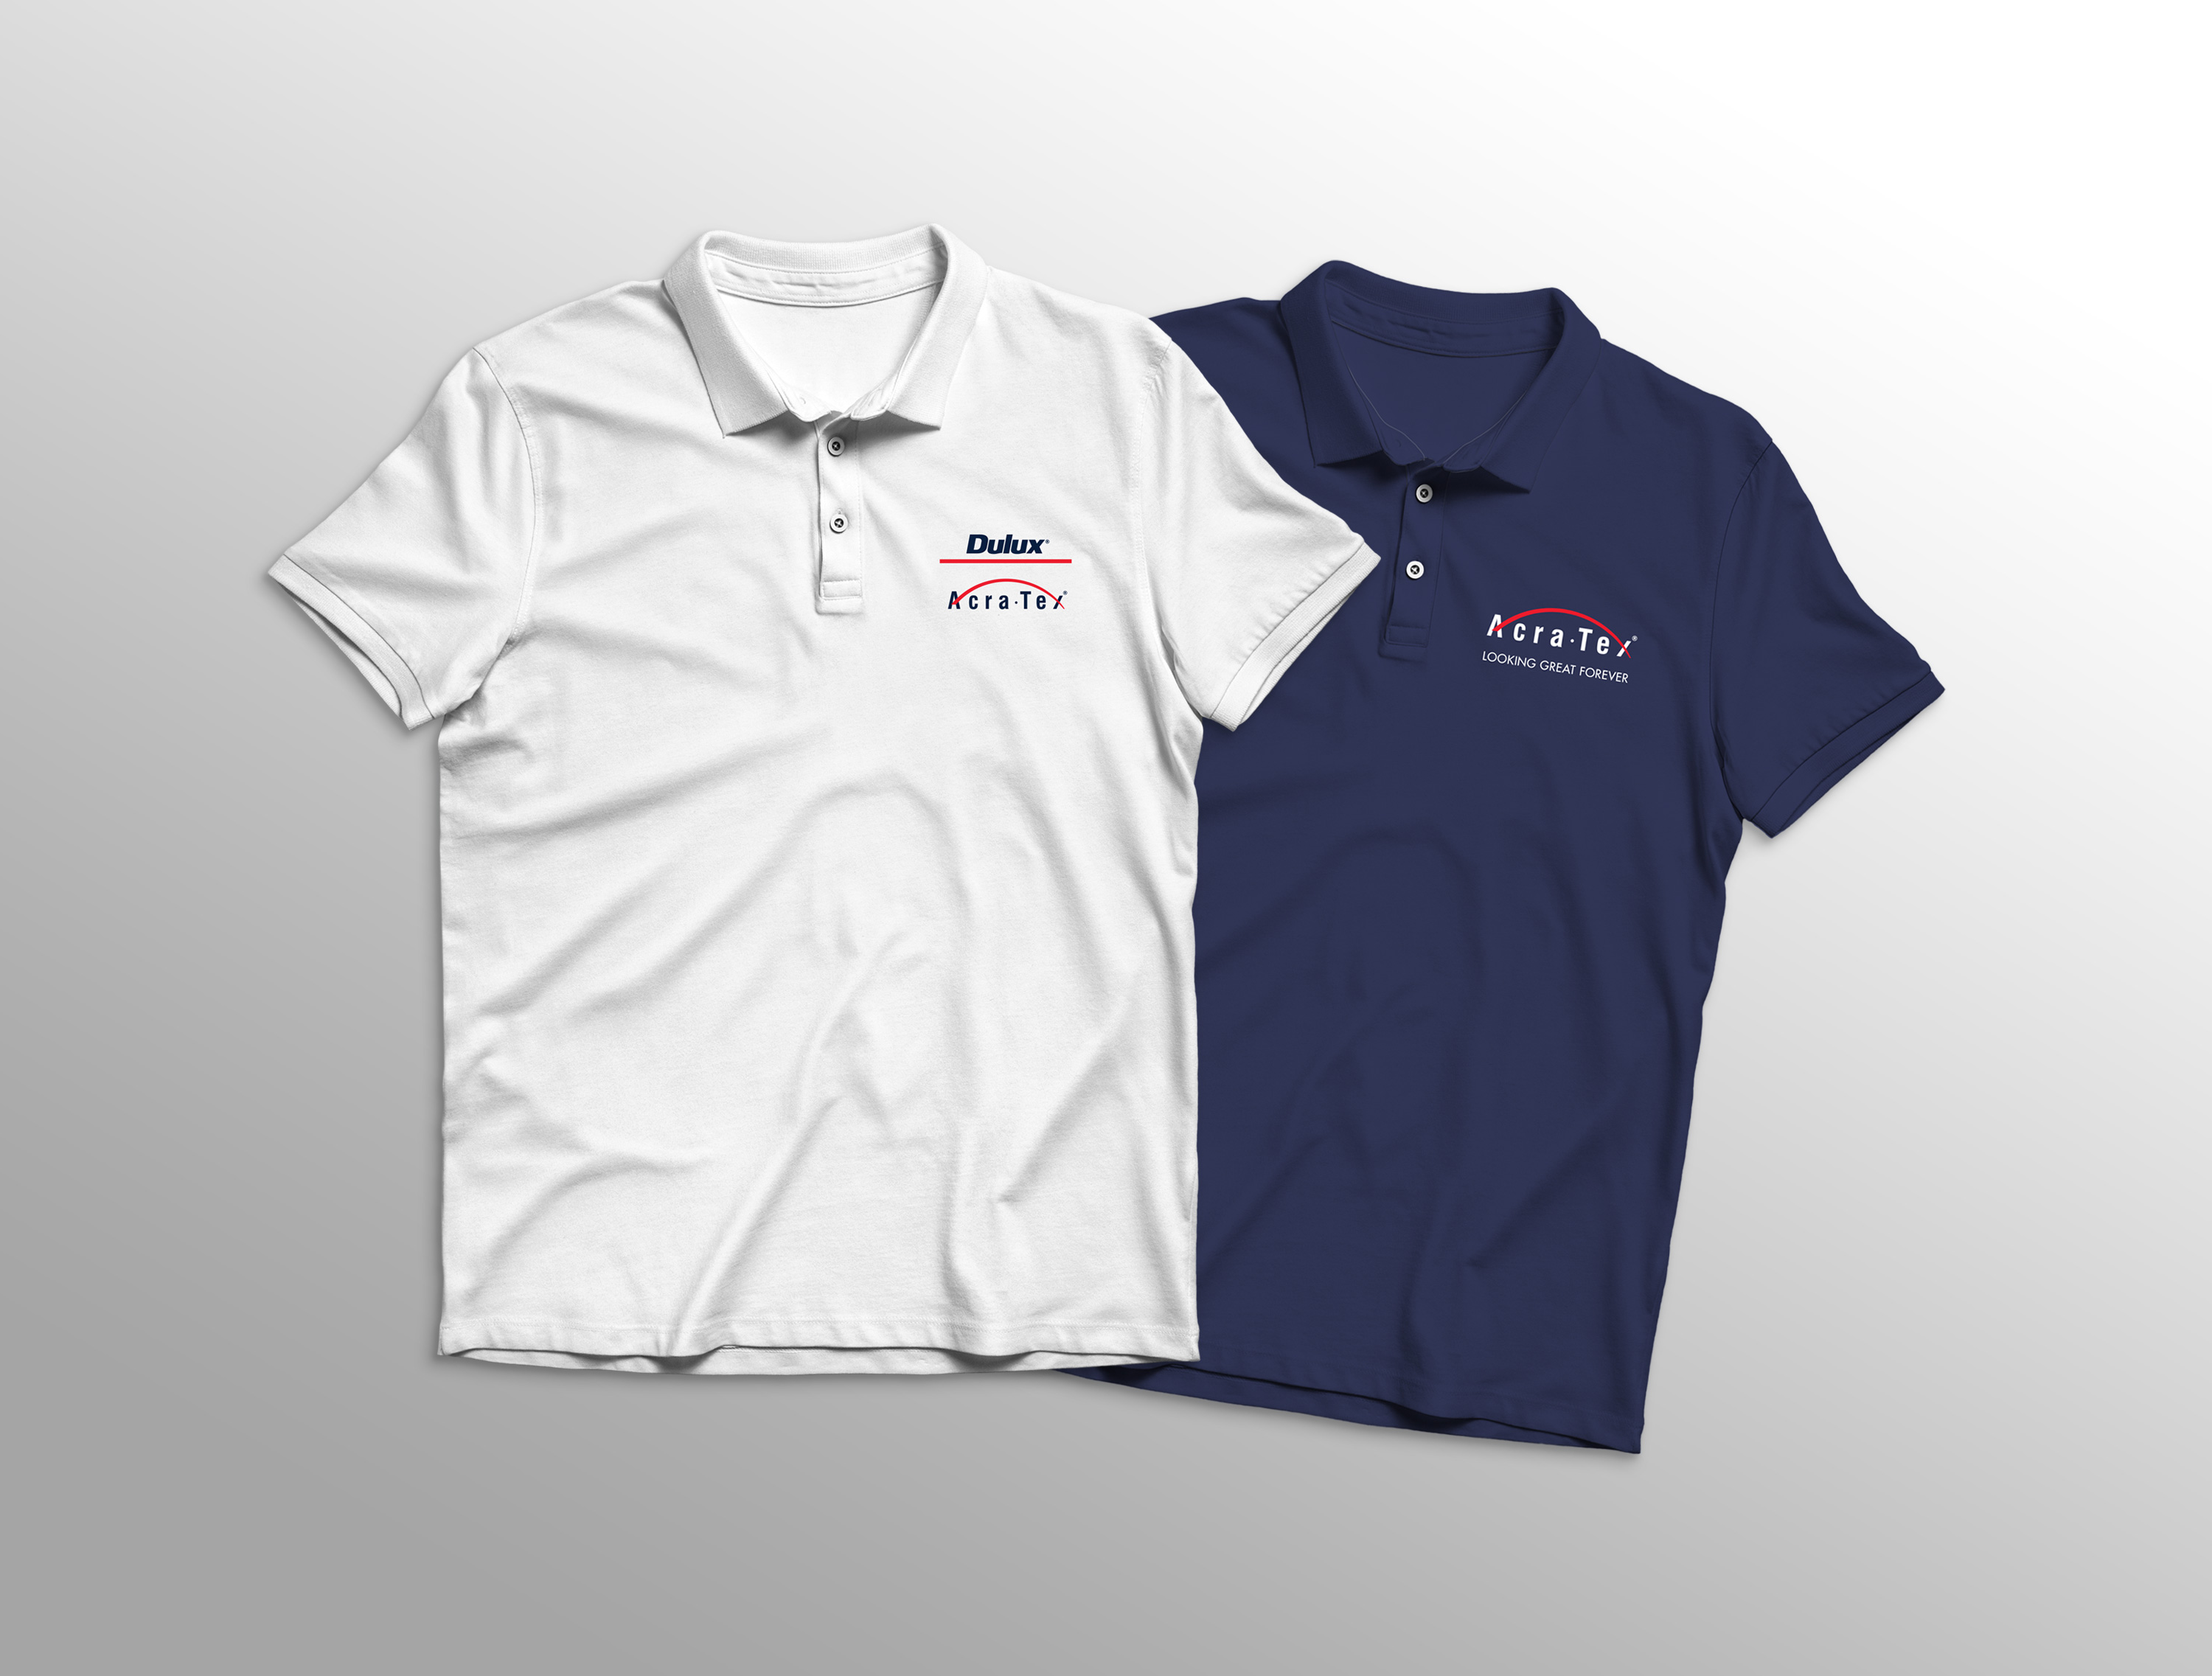 Dulux Acratex Shirts